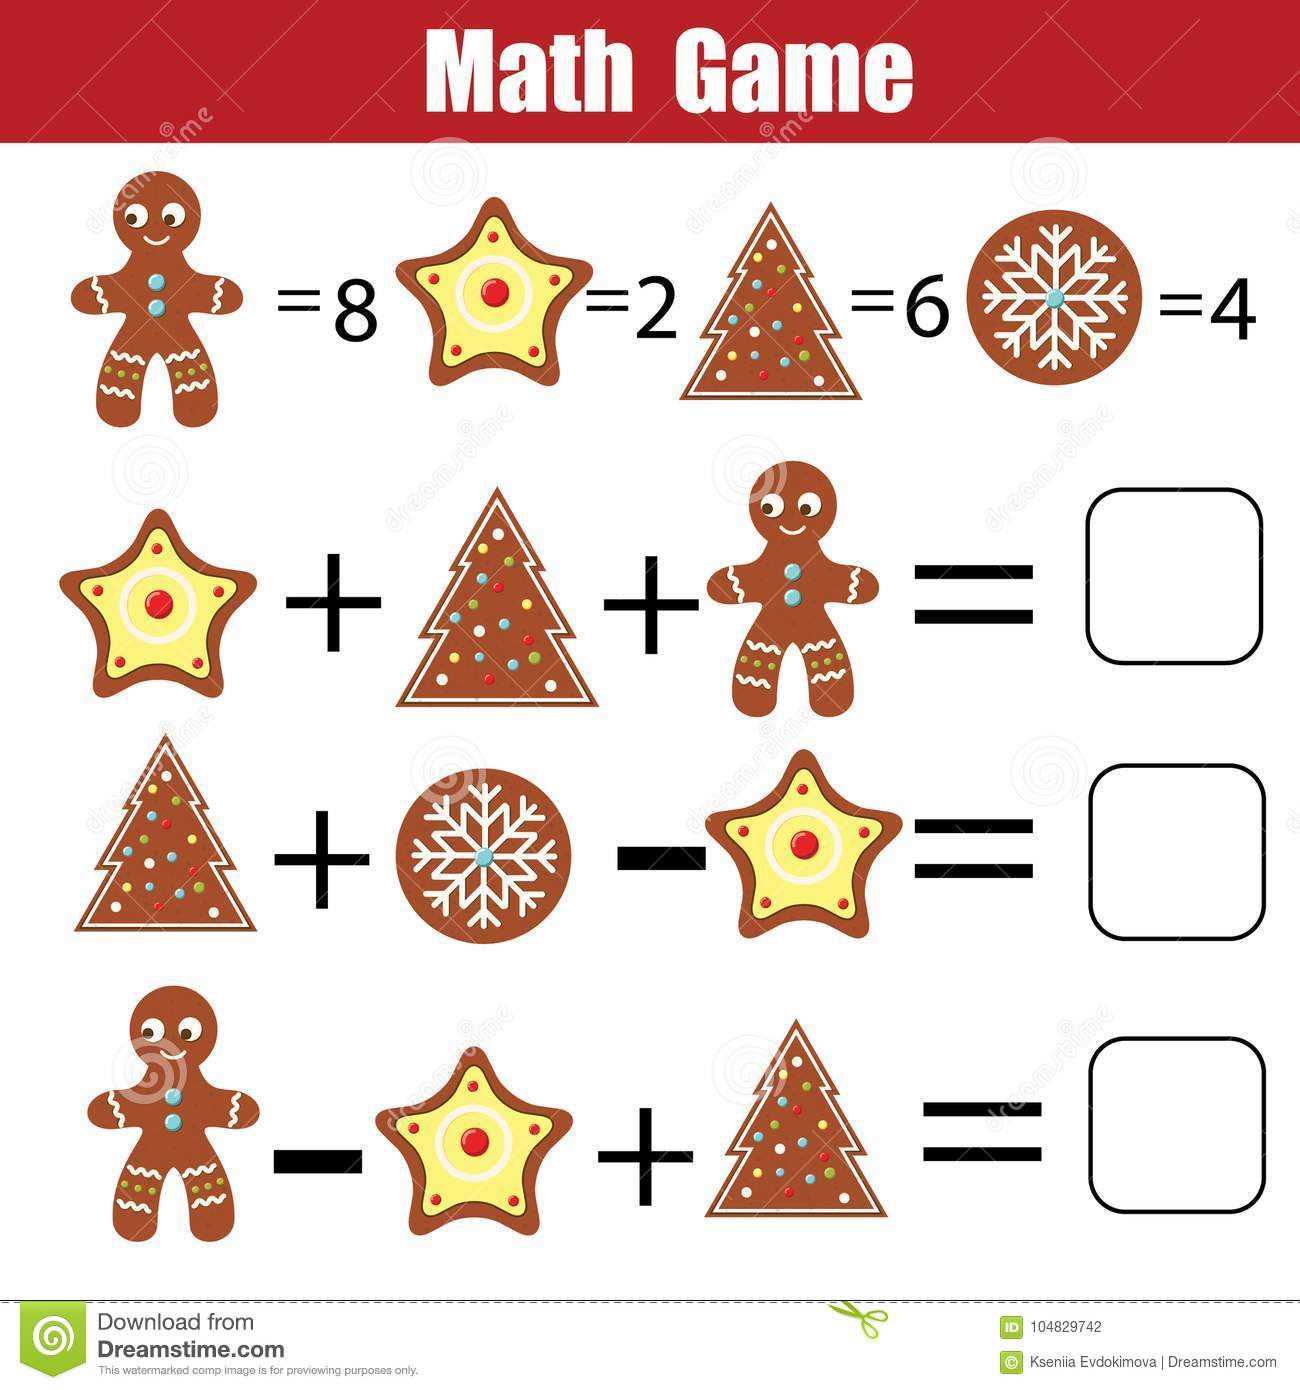 Math Educational Game For Children Mathematical Counting